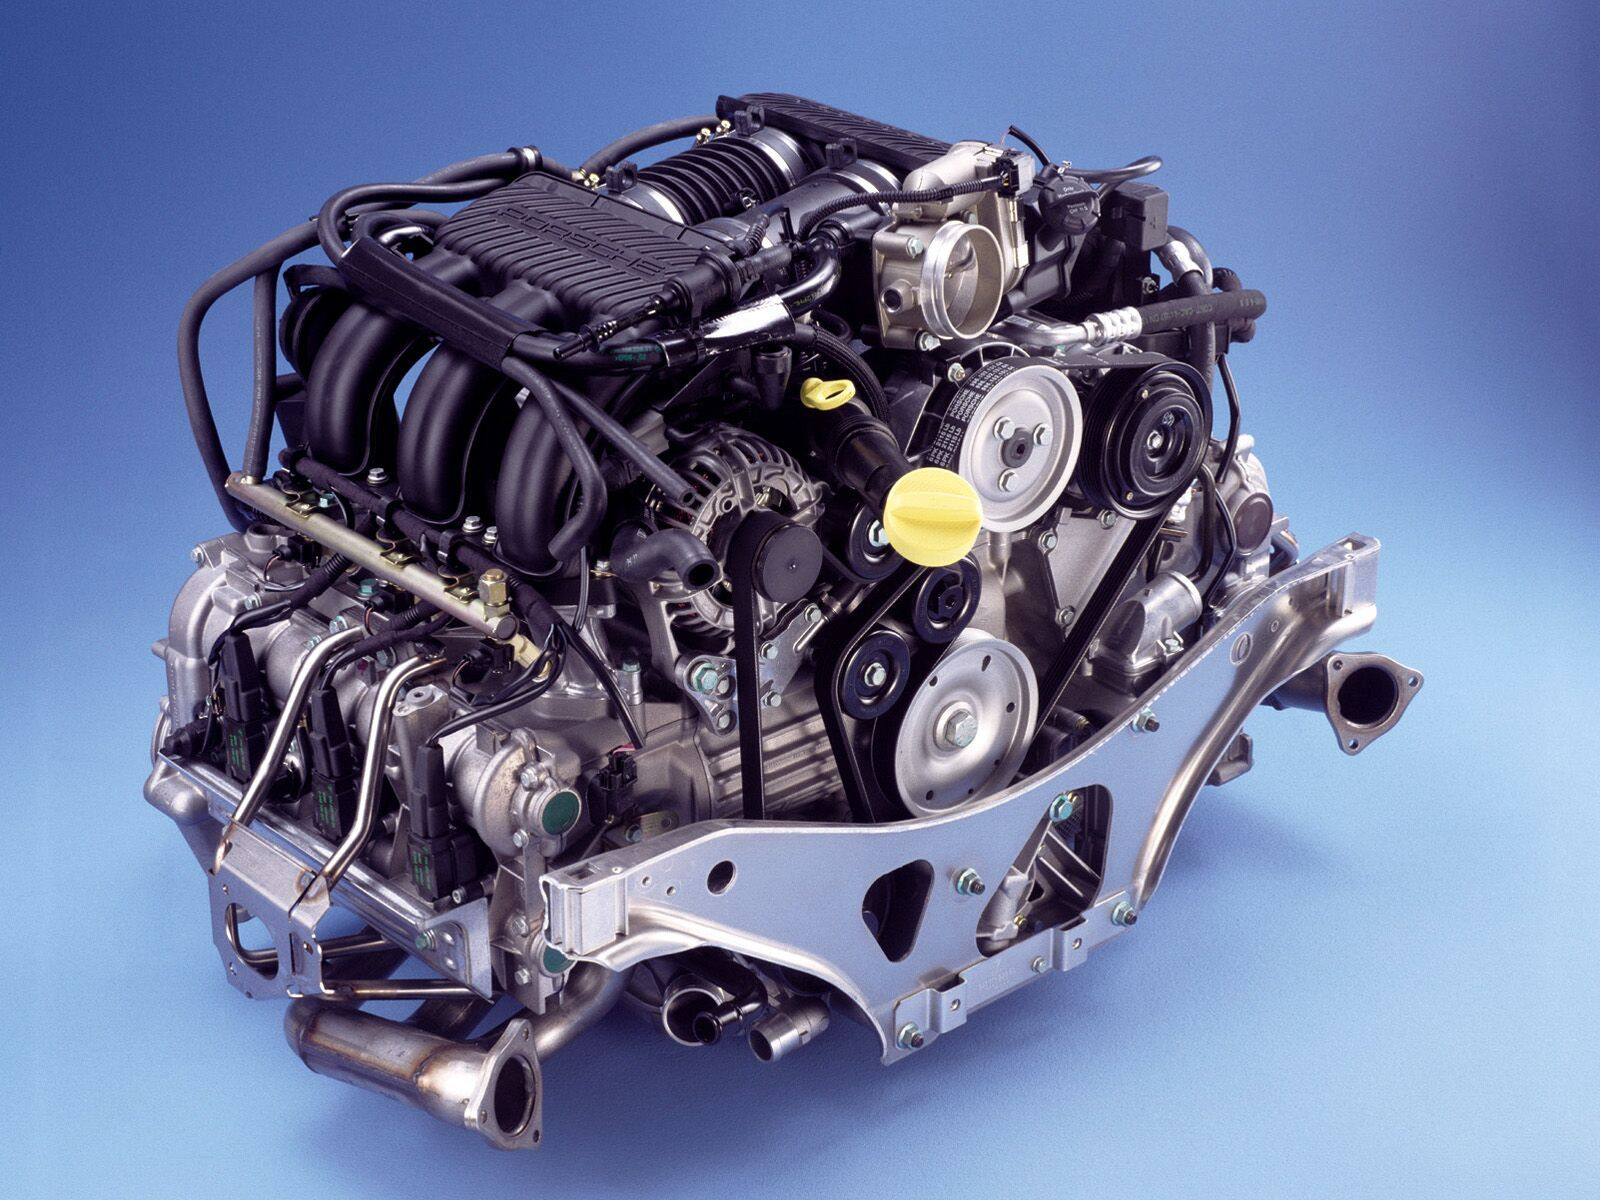 Pin by Ben Dover on Porsche VW Engines Transmissions & ponents